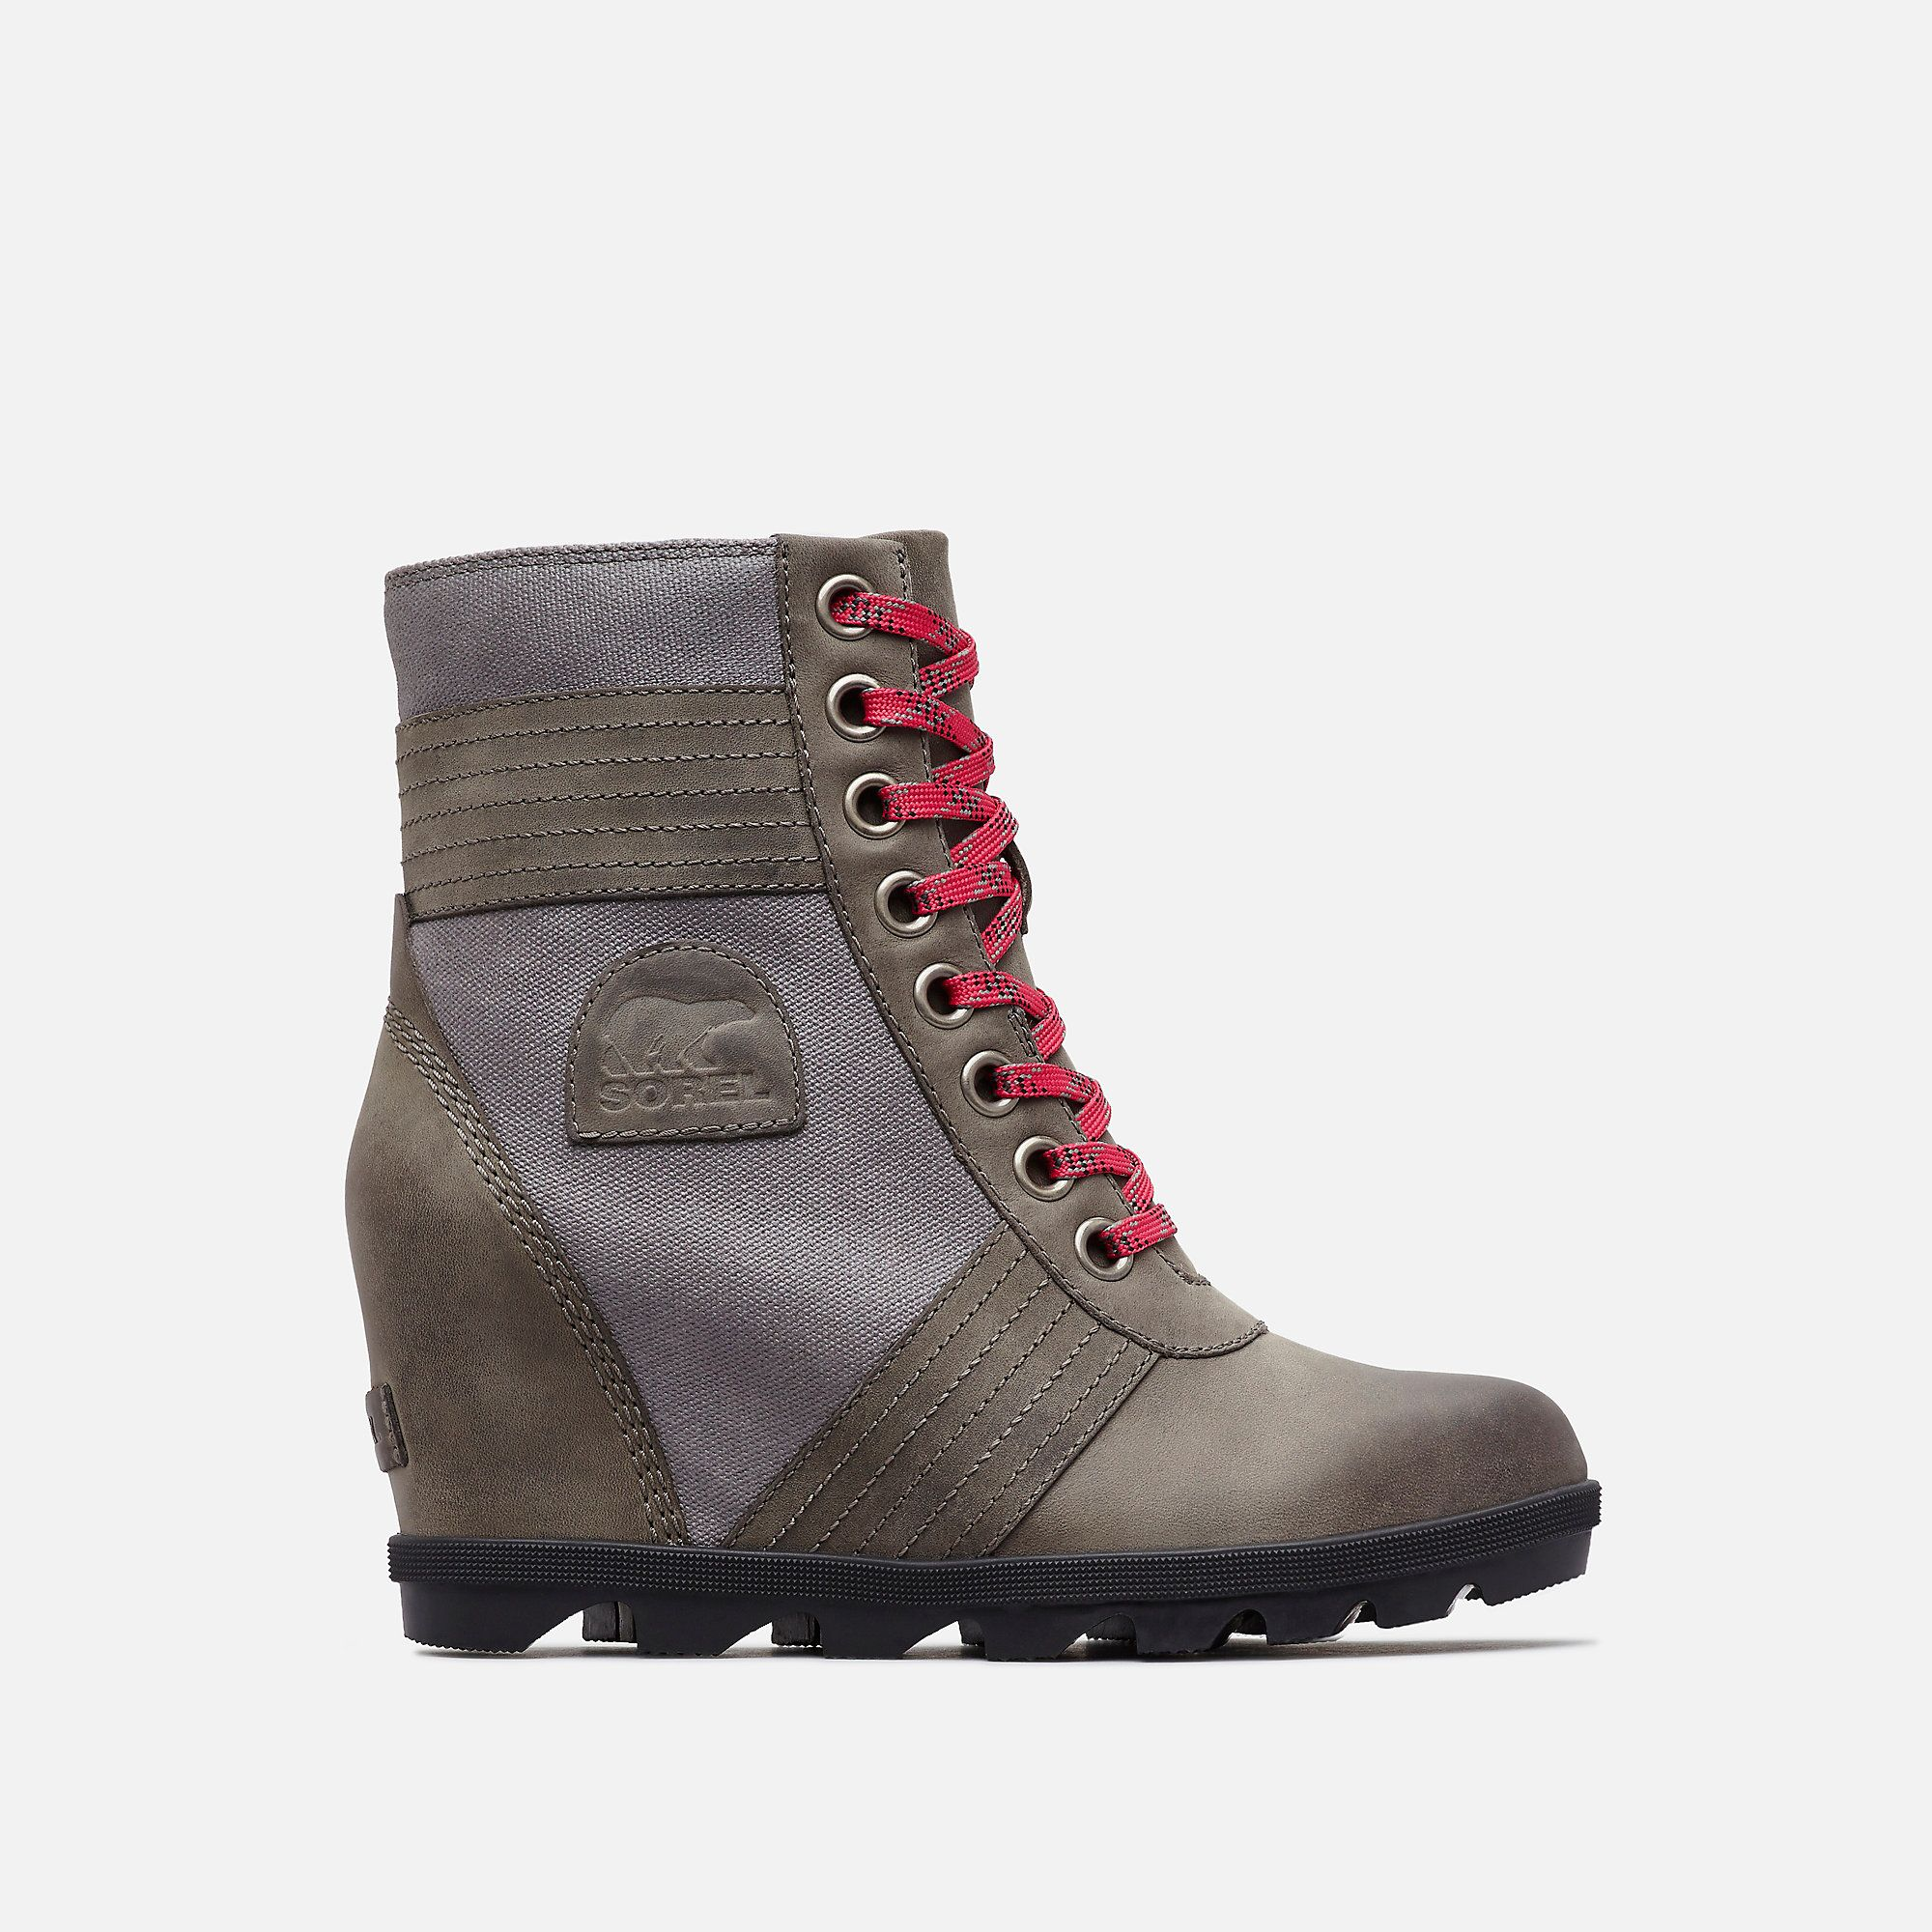 3de5ea614f6 Women s Lexie™ Wedge Boot in 2019